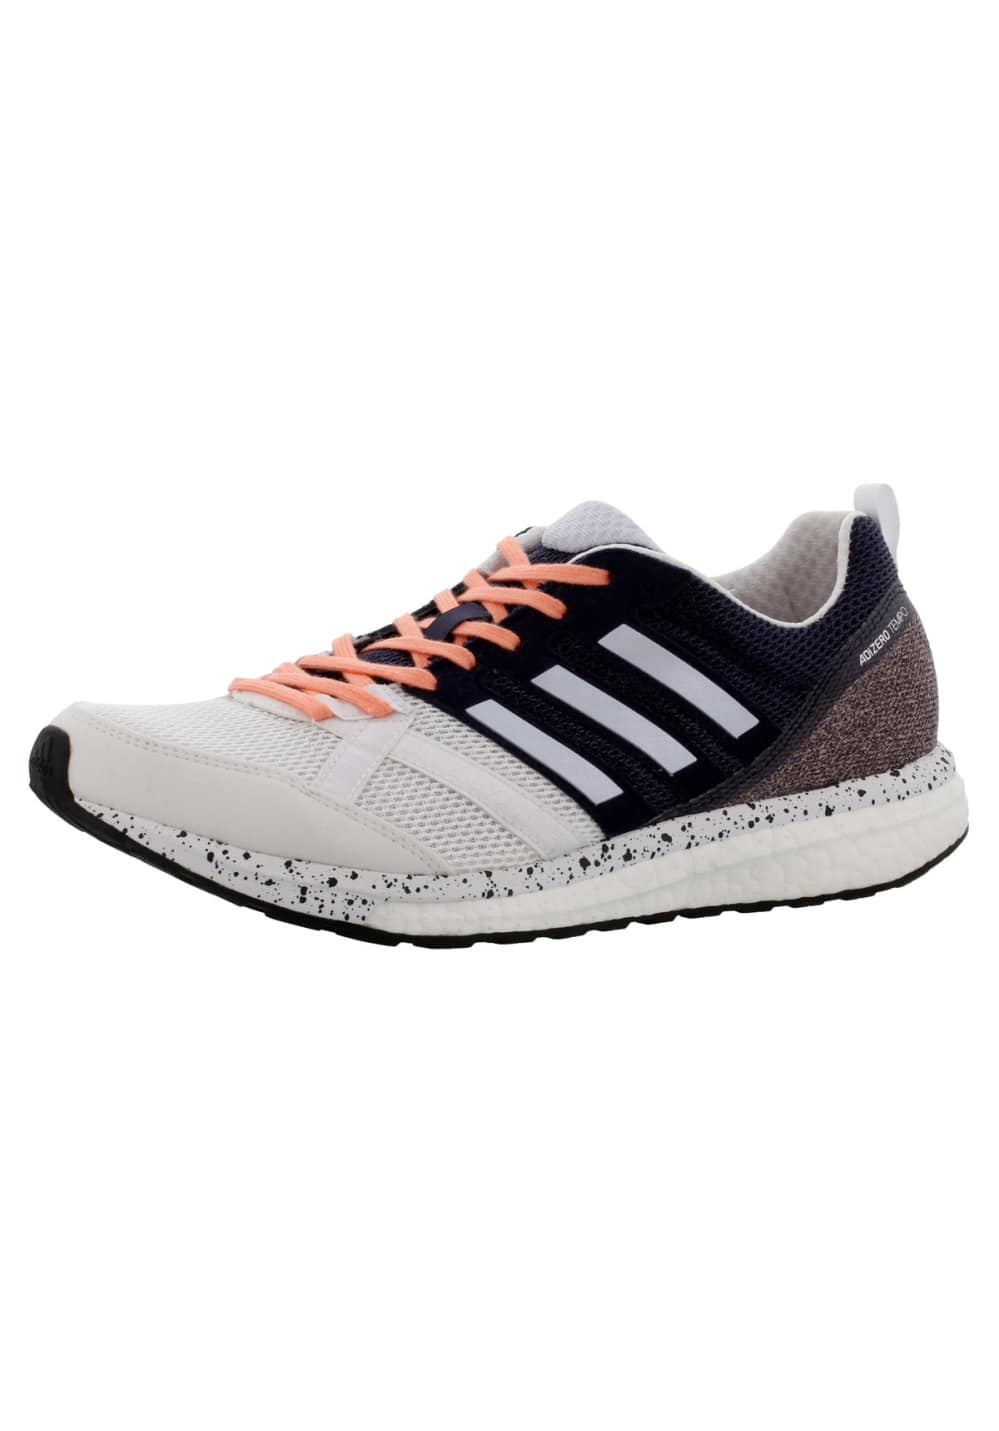 31d7fad11313d adidas adiZero Tempo 9 - Running shoes for Women - White